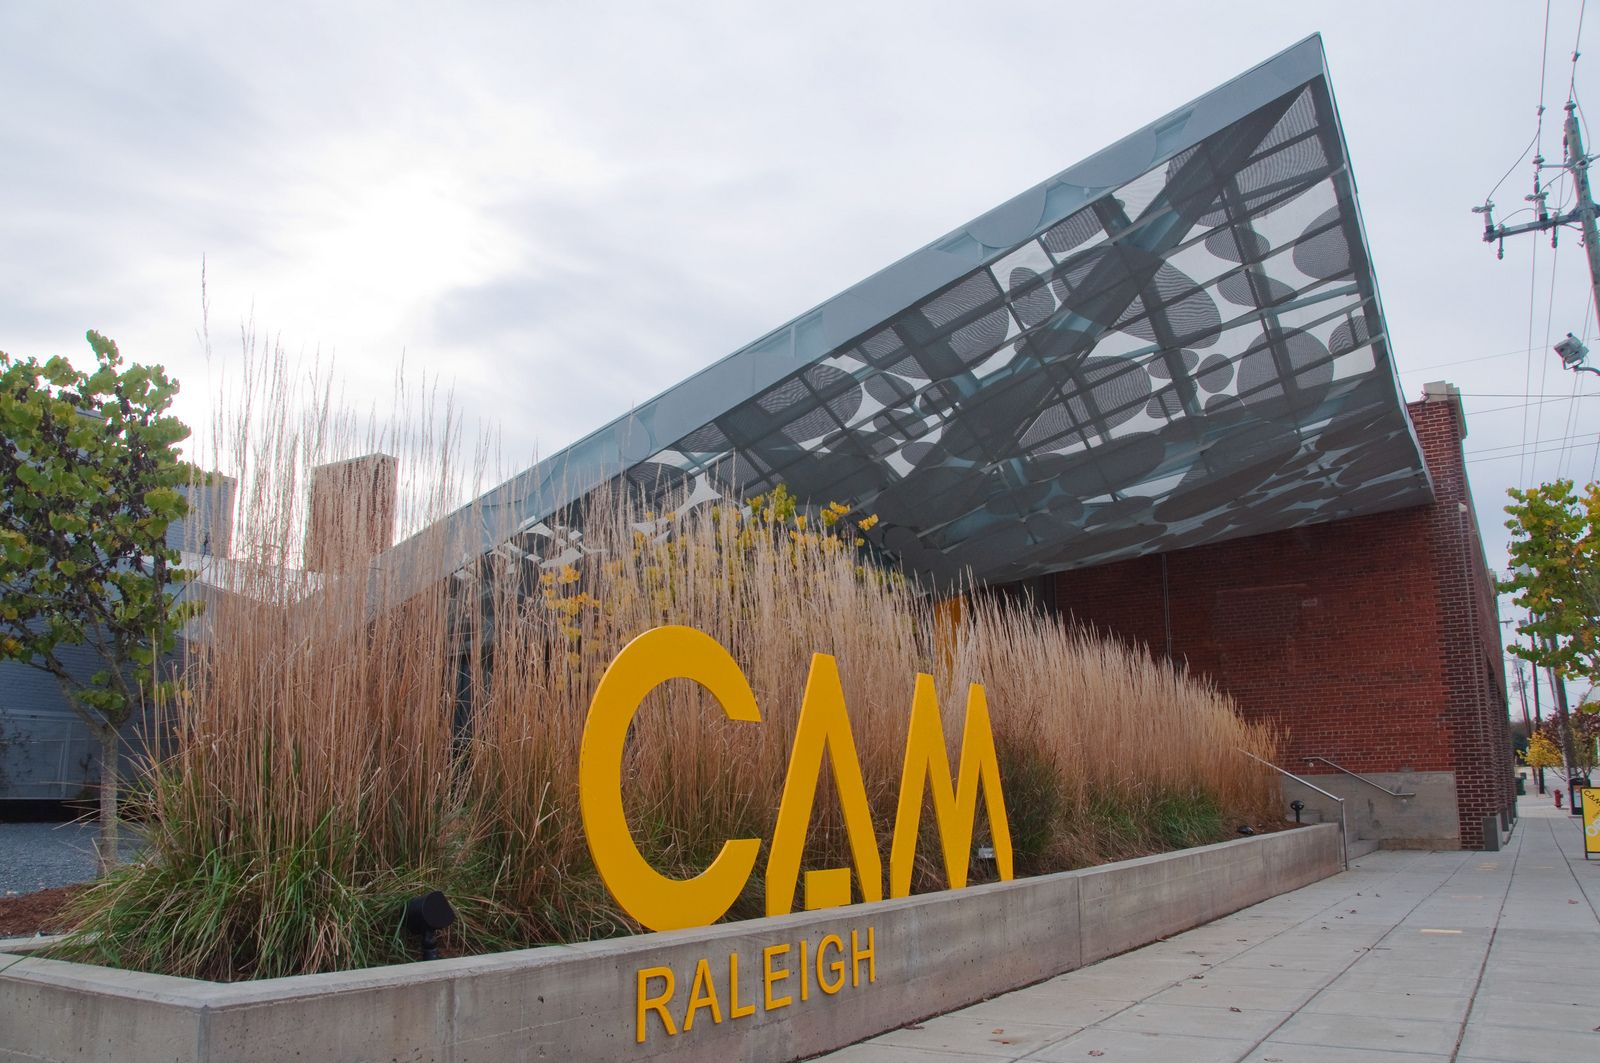 30 Awesome Things To Do In Raleigh